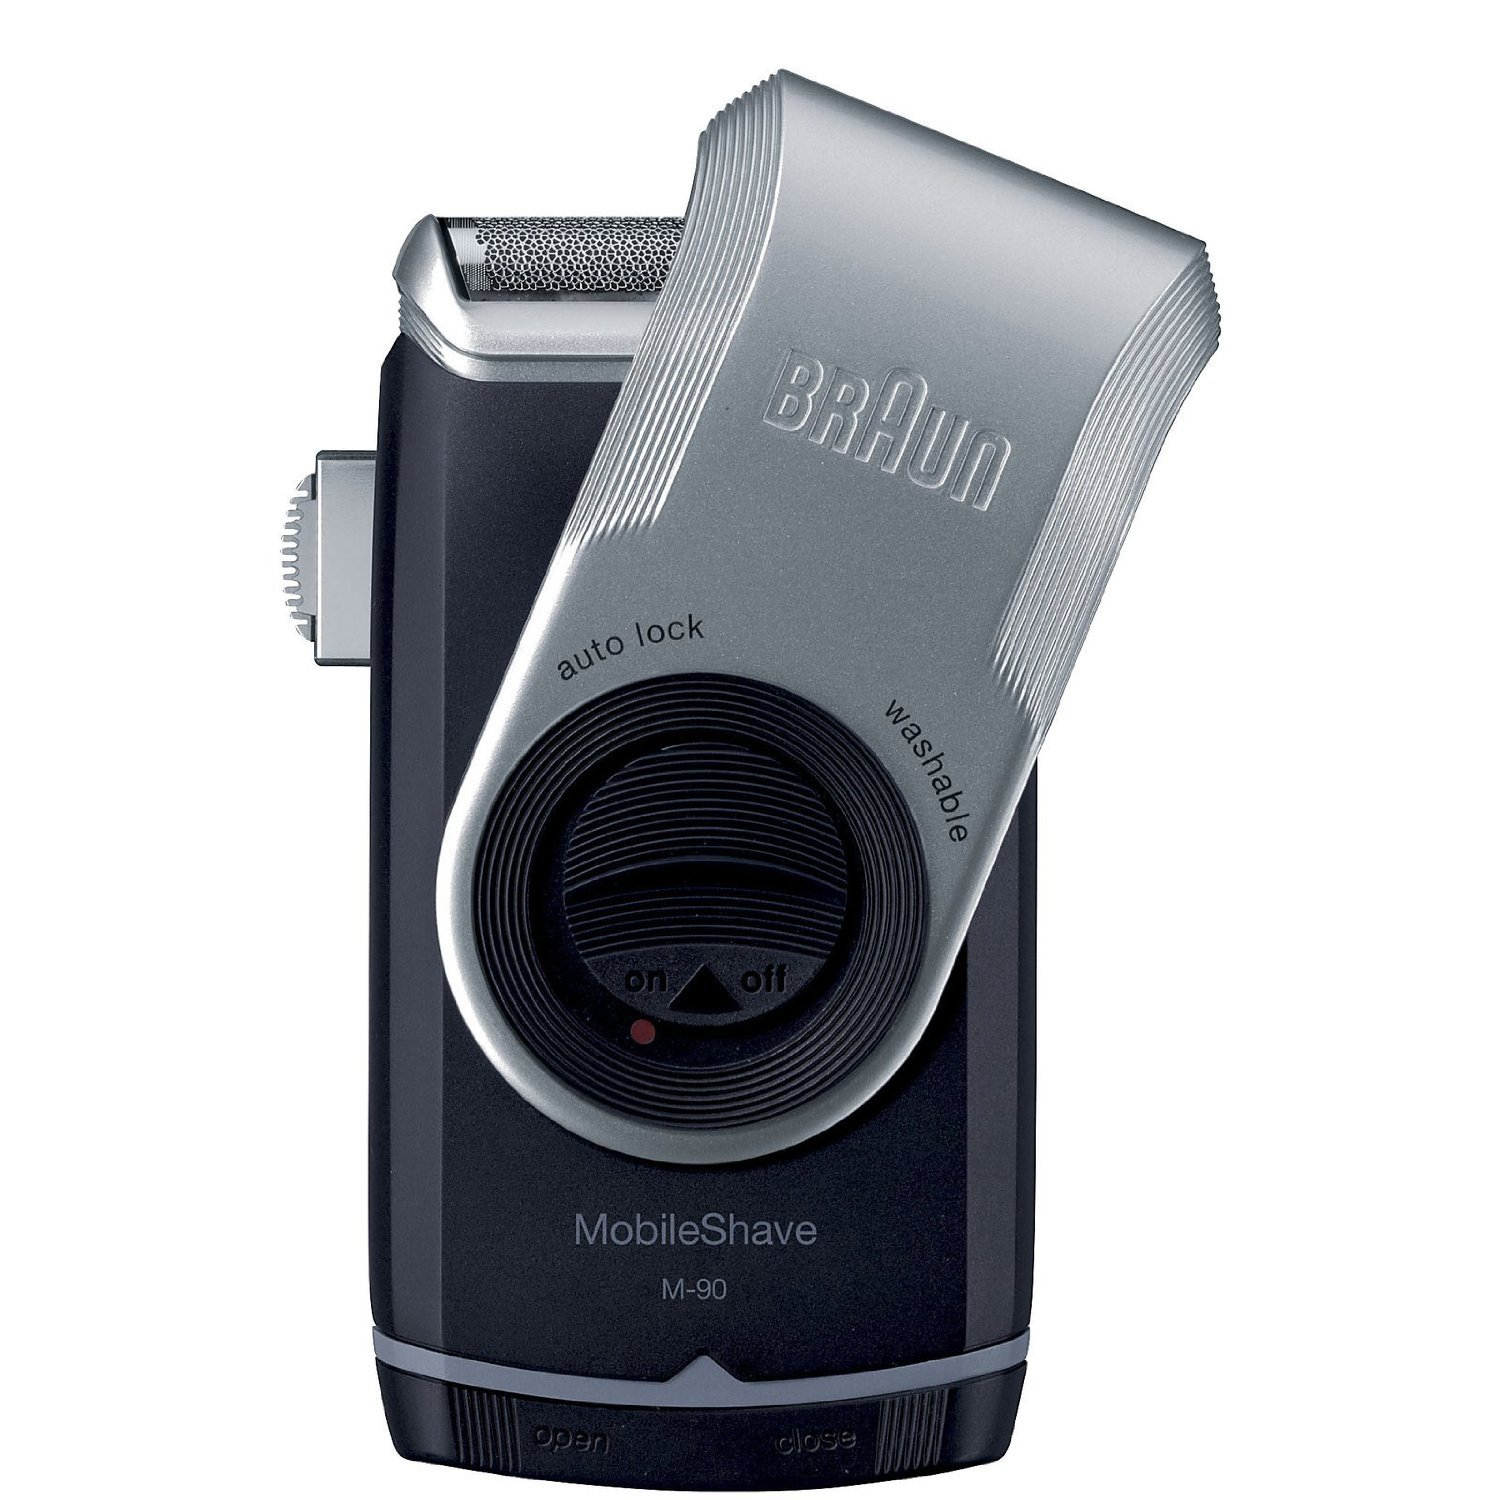 Braun M90 Mobile Shaver for Precision Trimming, Great for Travel, Black/Silver